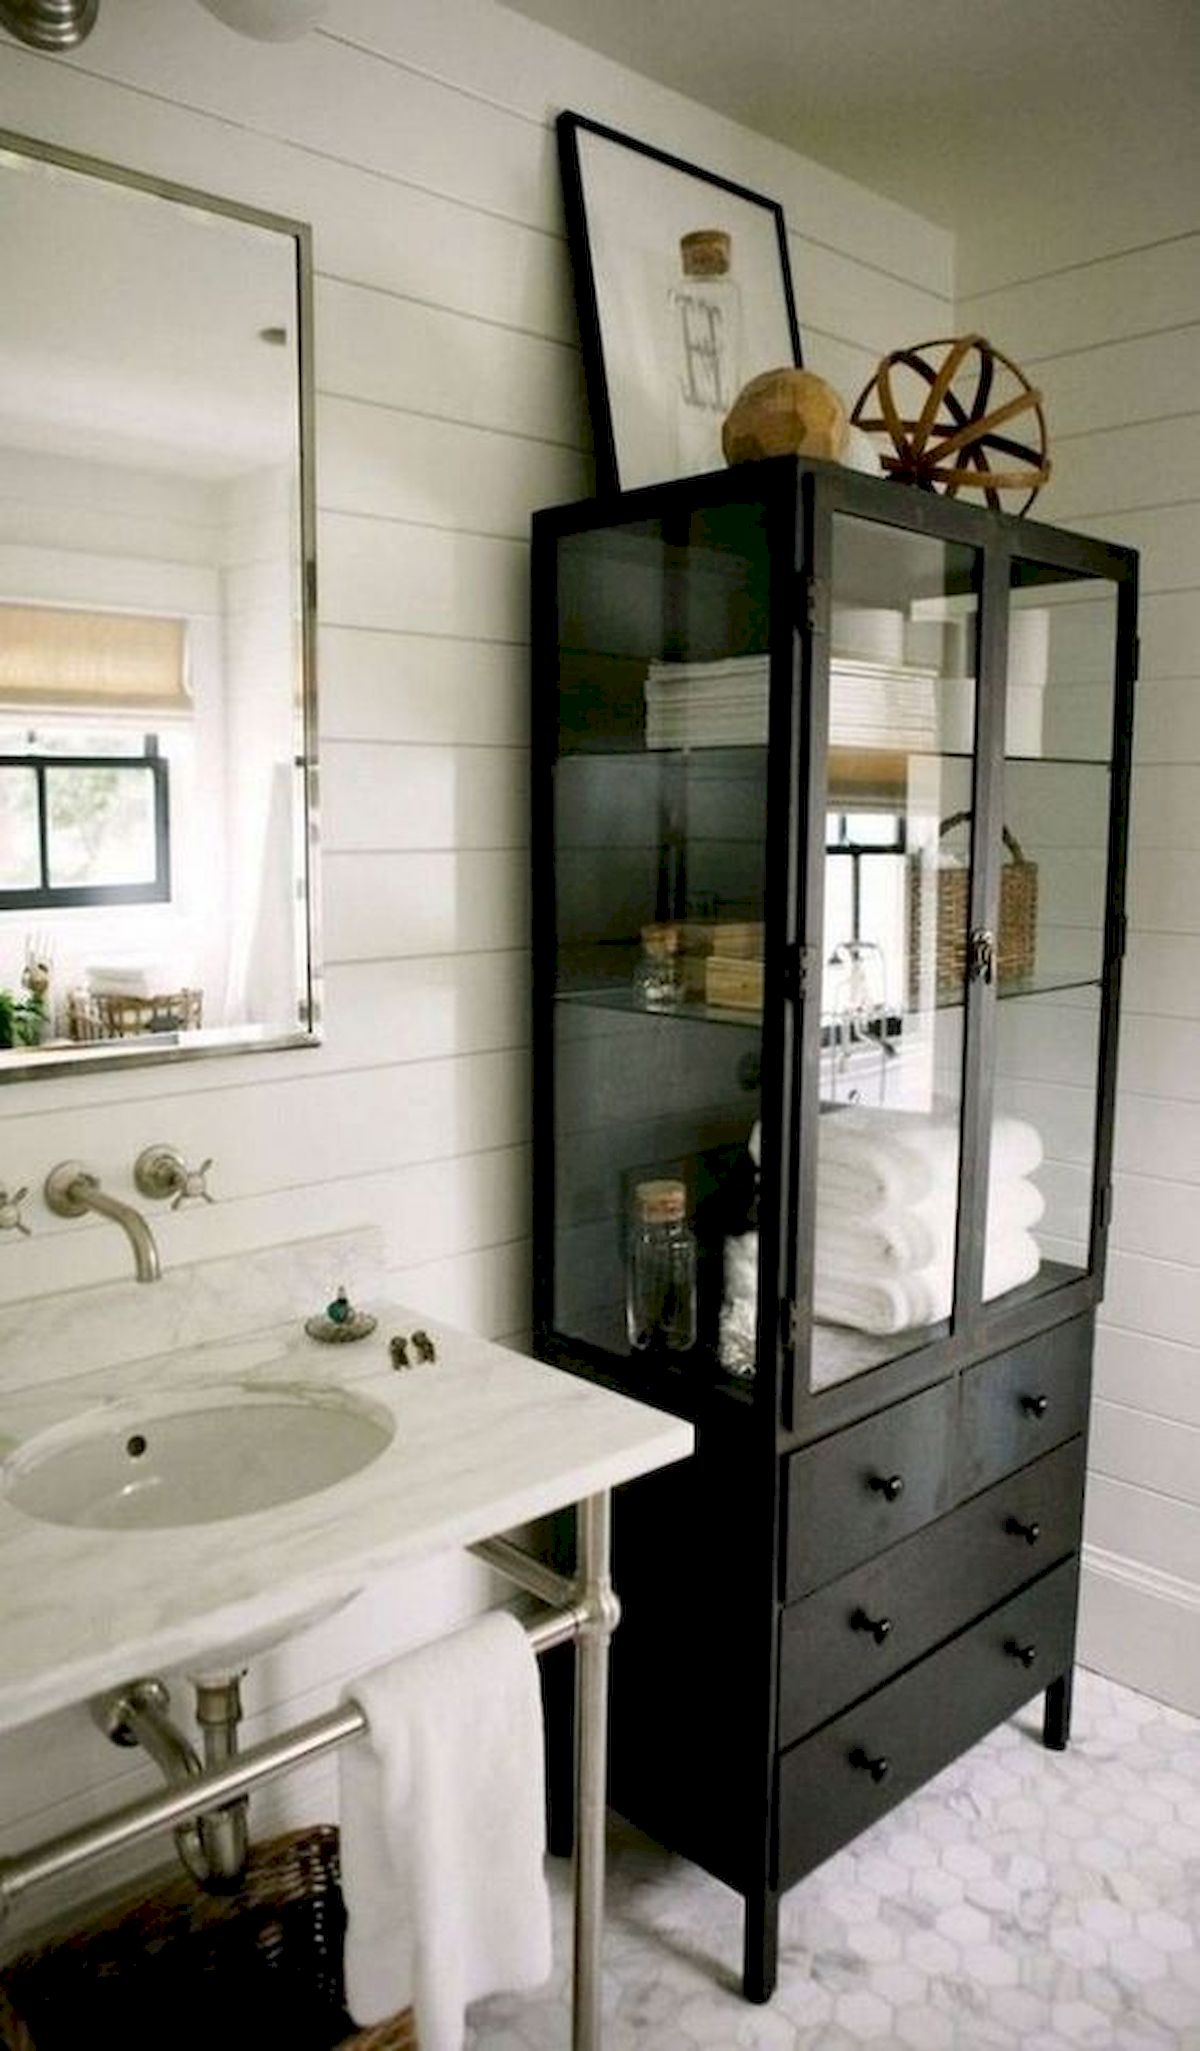 50 Best DIY Storage Design Ideas to Maximize Your Small ...